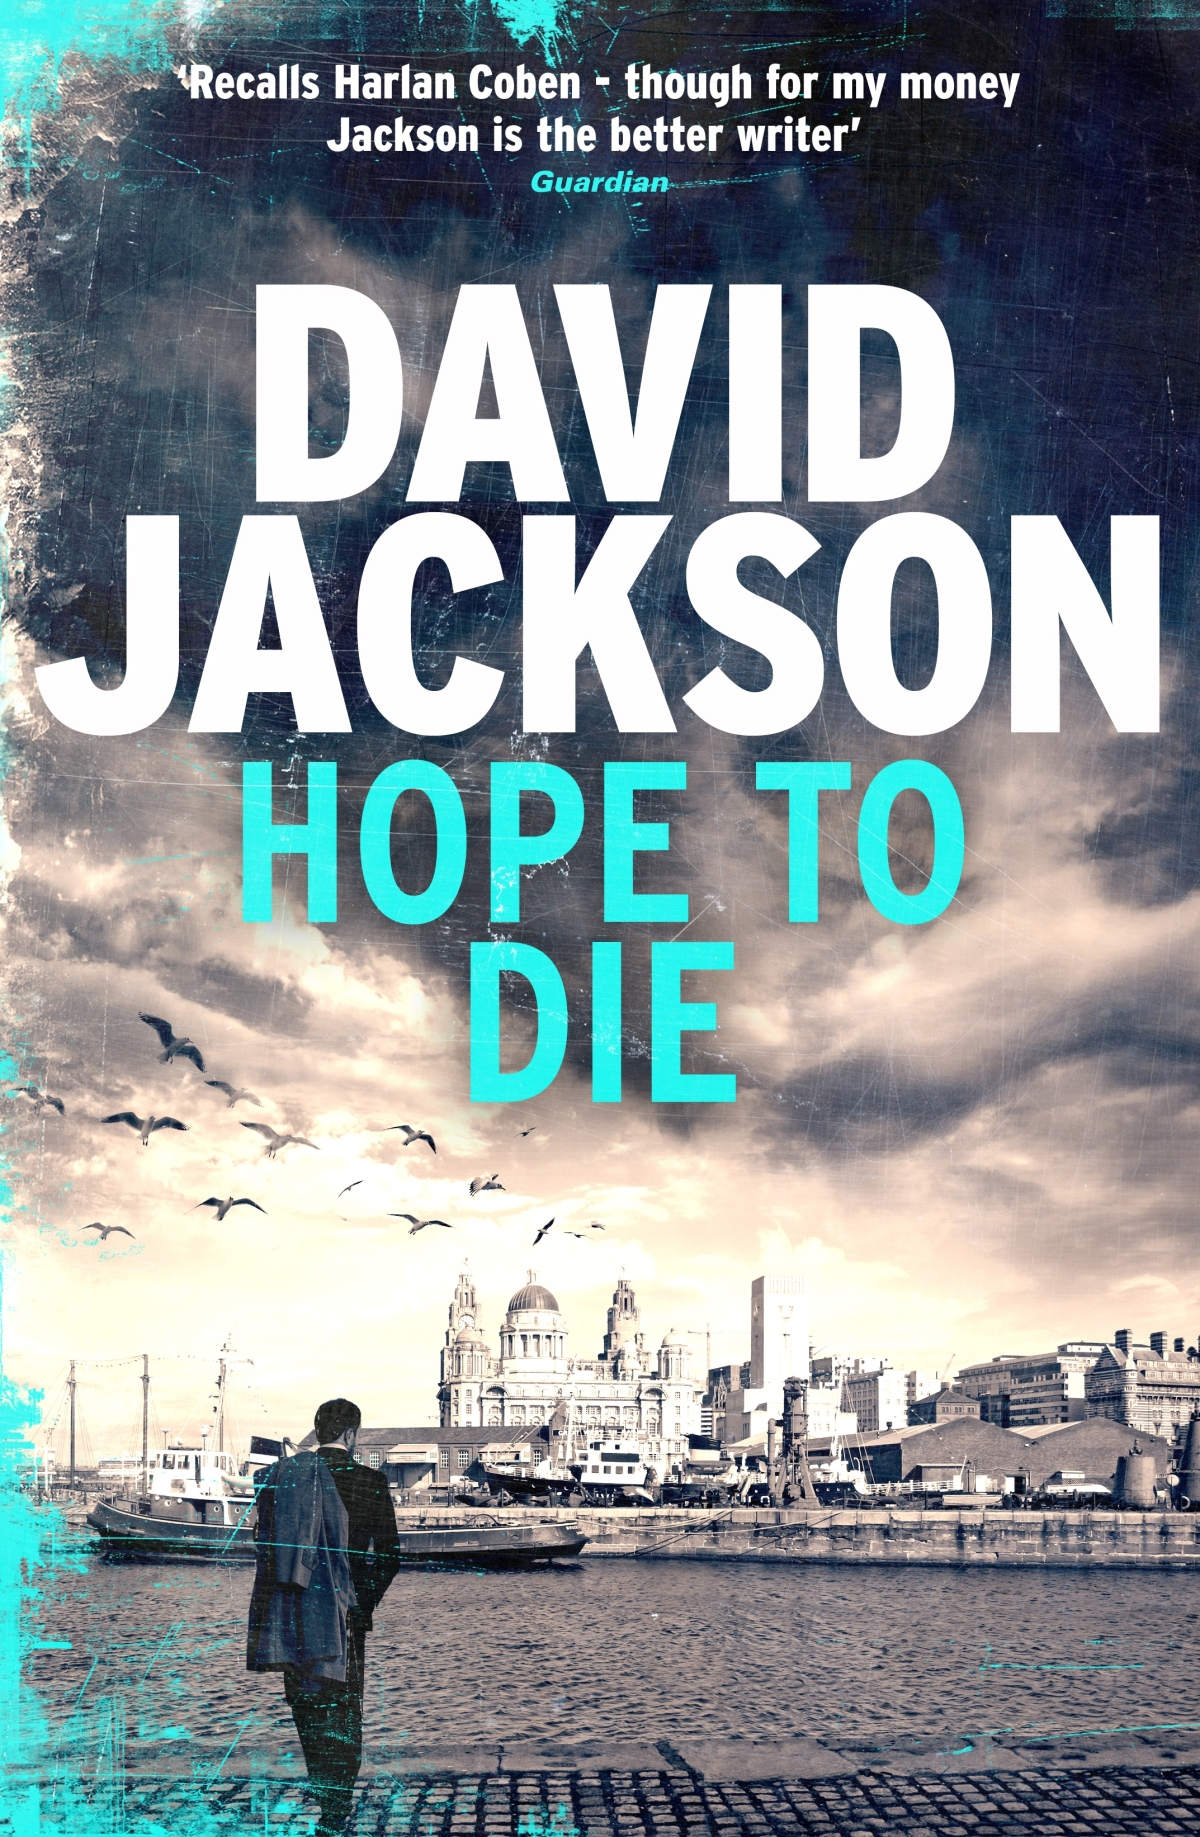 Q&A with David Jackson #HopeToDie